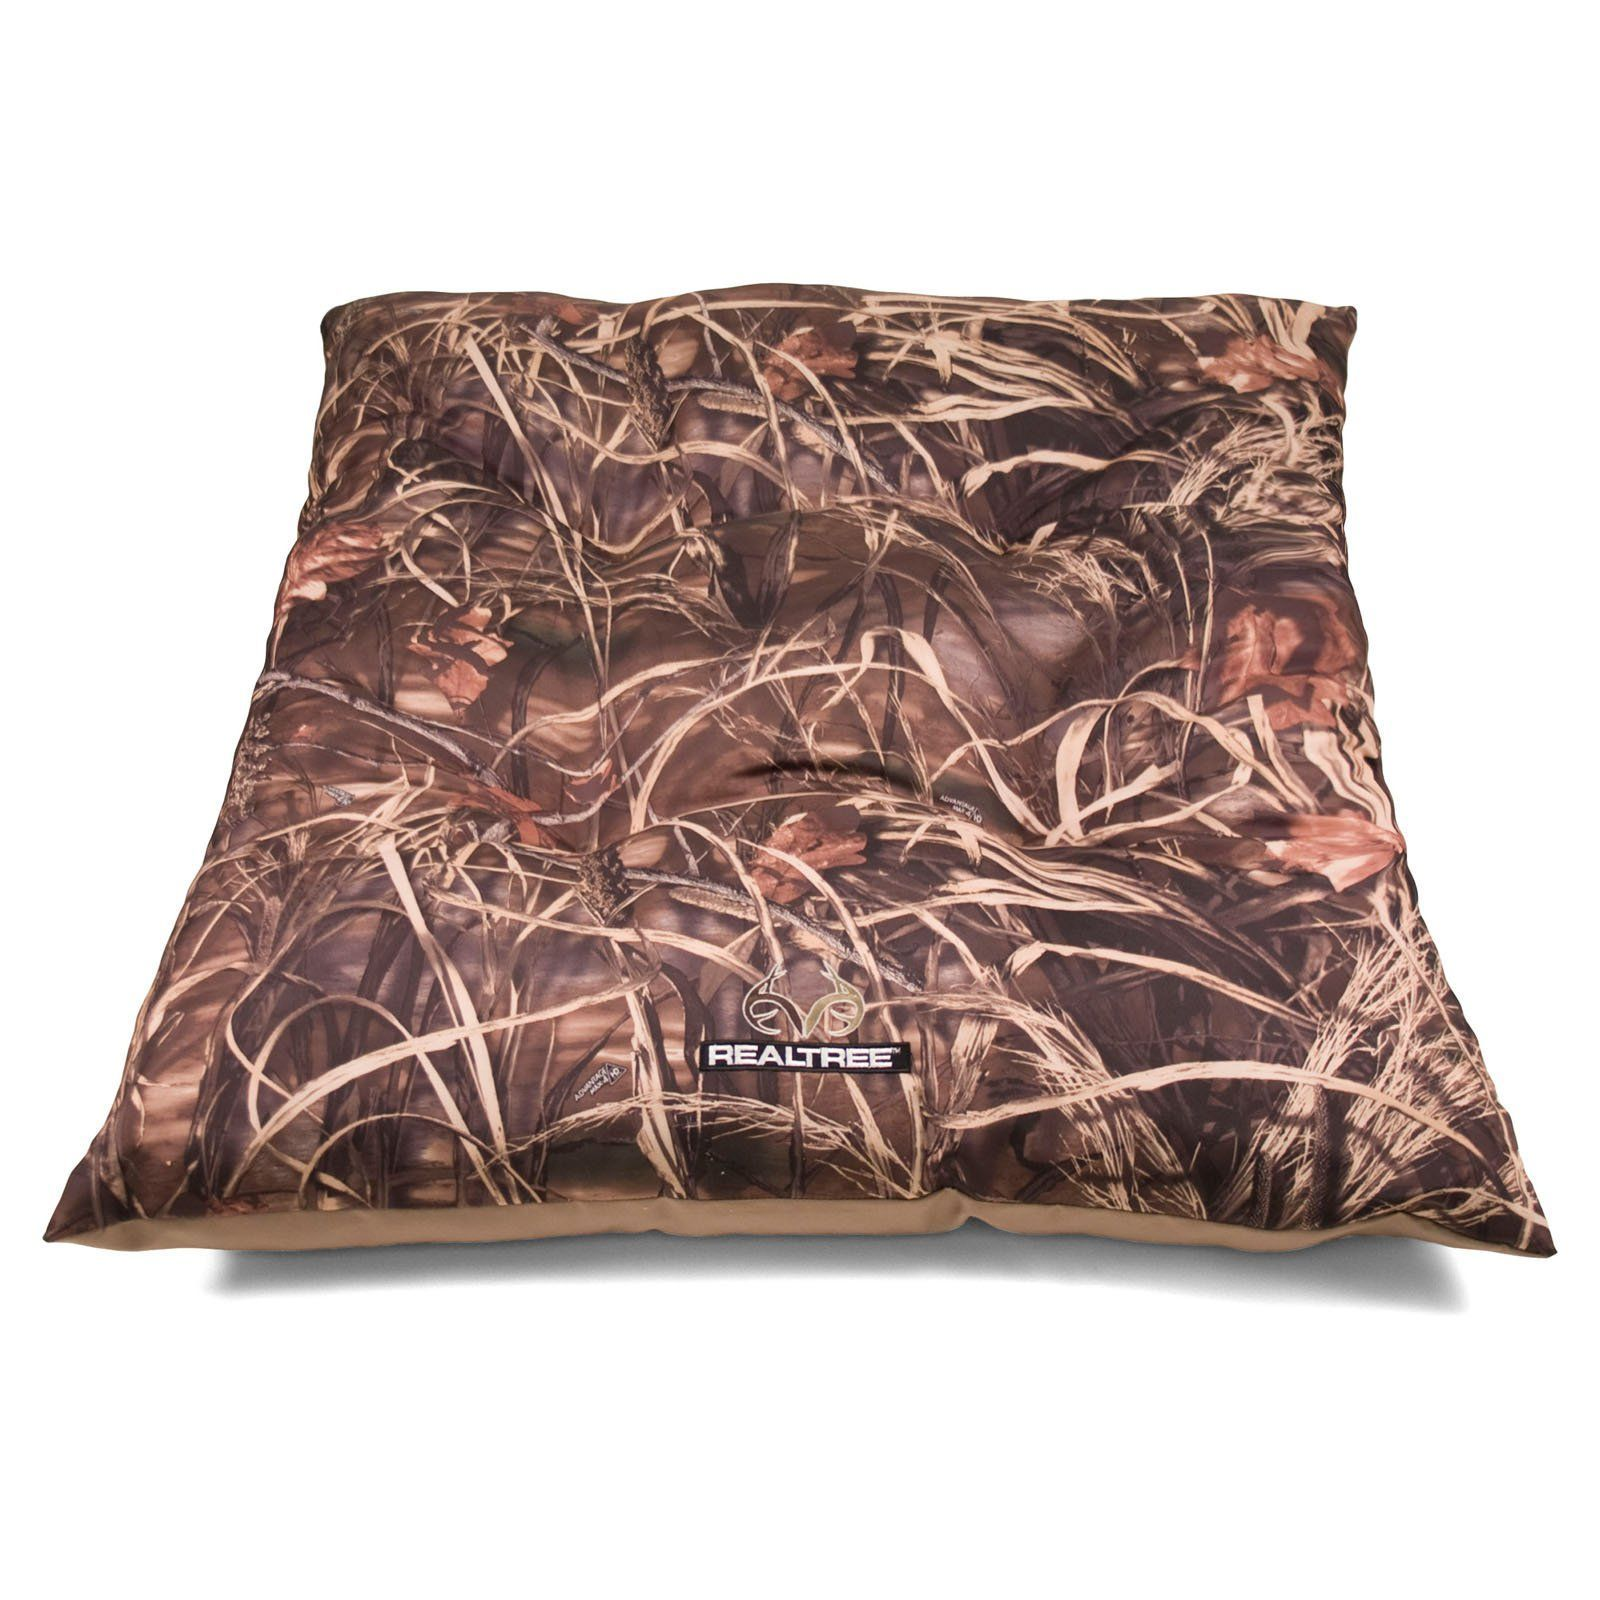 Dallas Manufacturing Company Realtree Extra Large Tufted